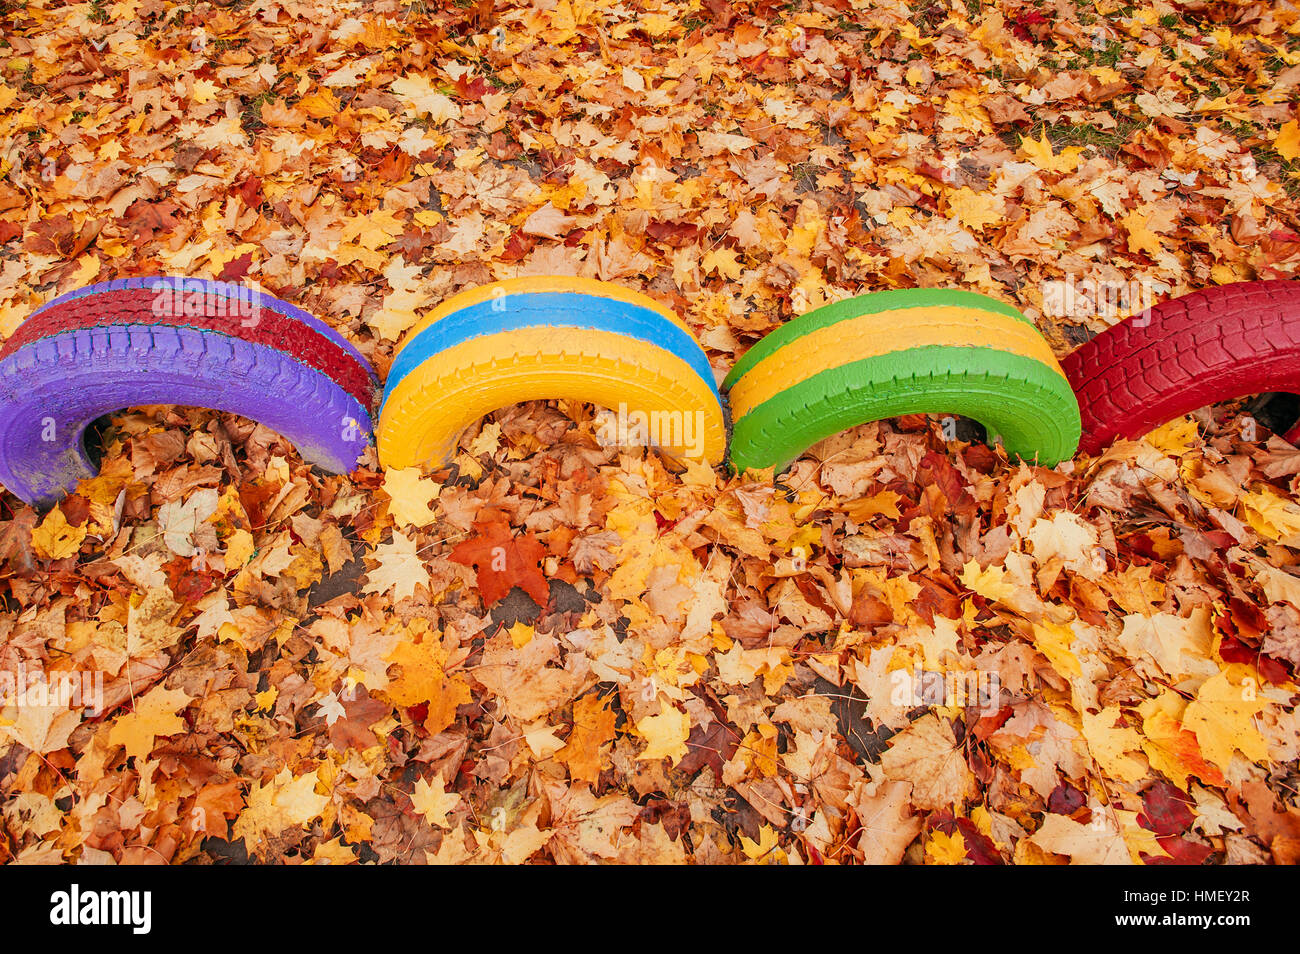 colored playground near the kindergarten - Stock Image